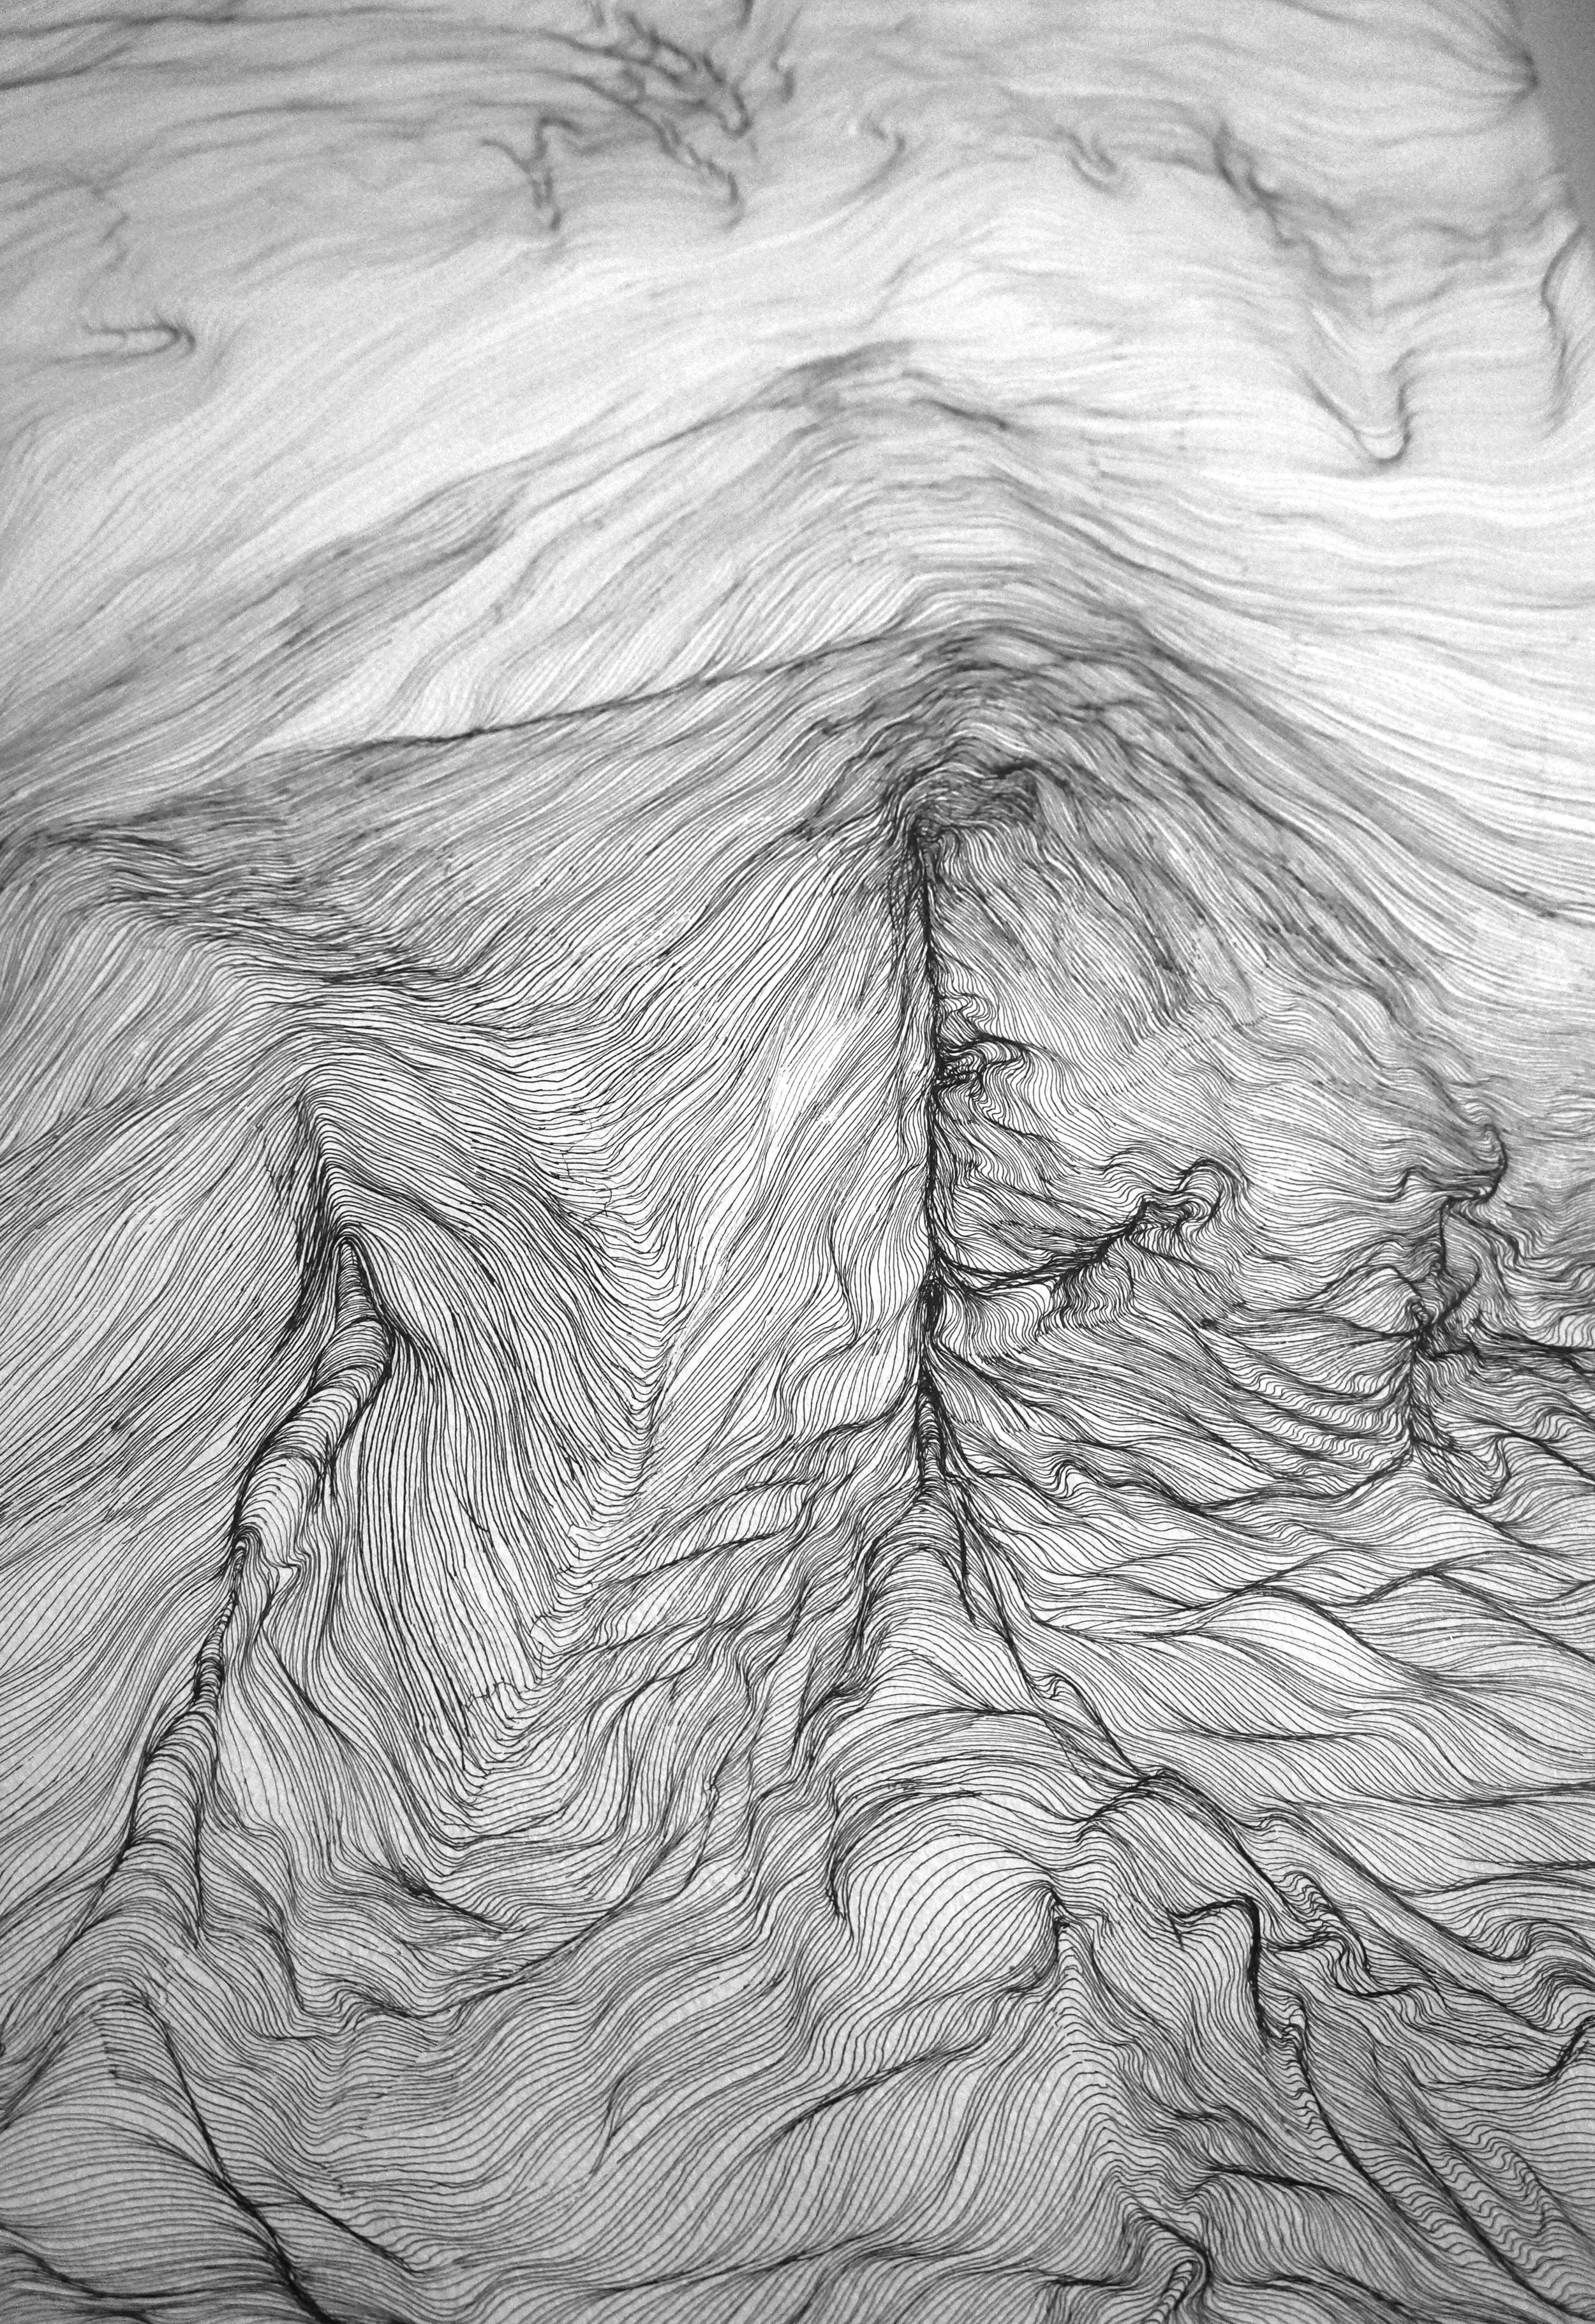 detail, black rotering pen ink on white paper